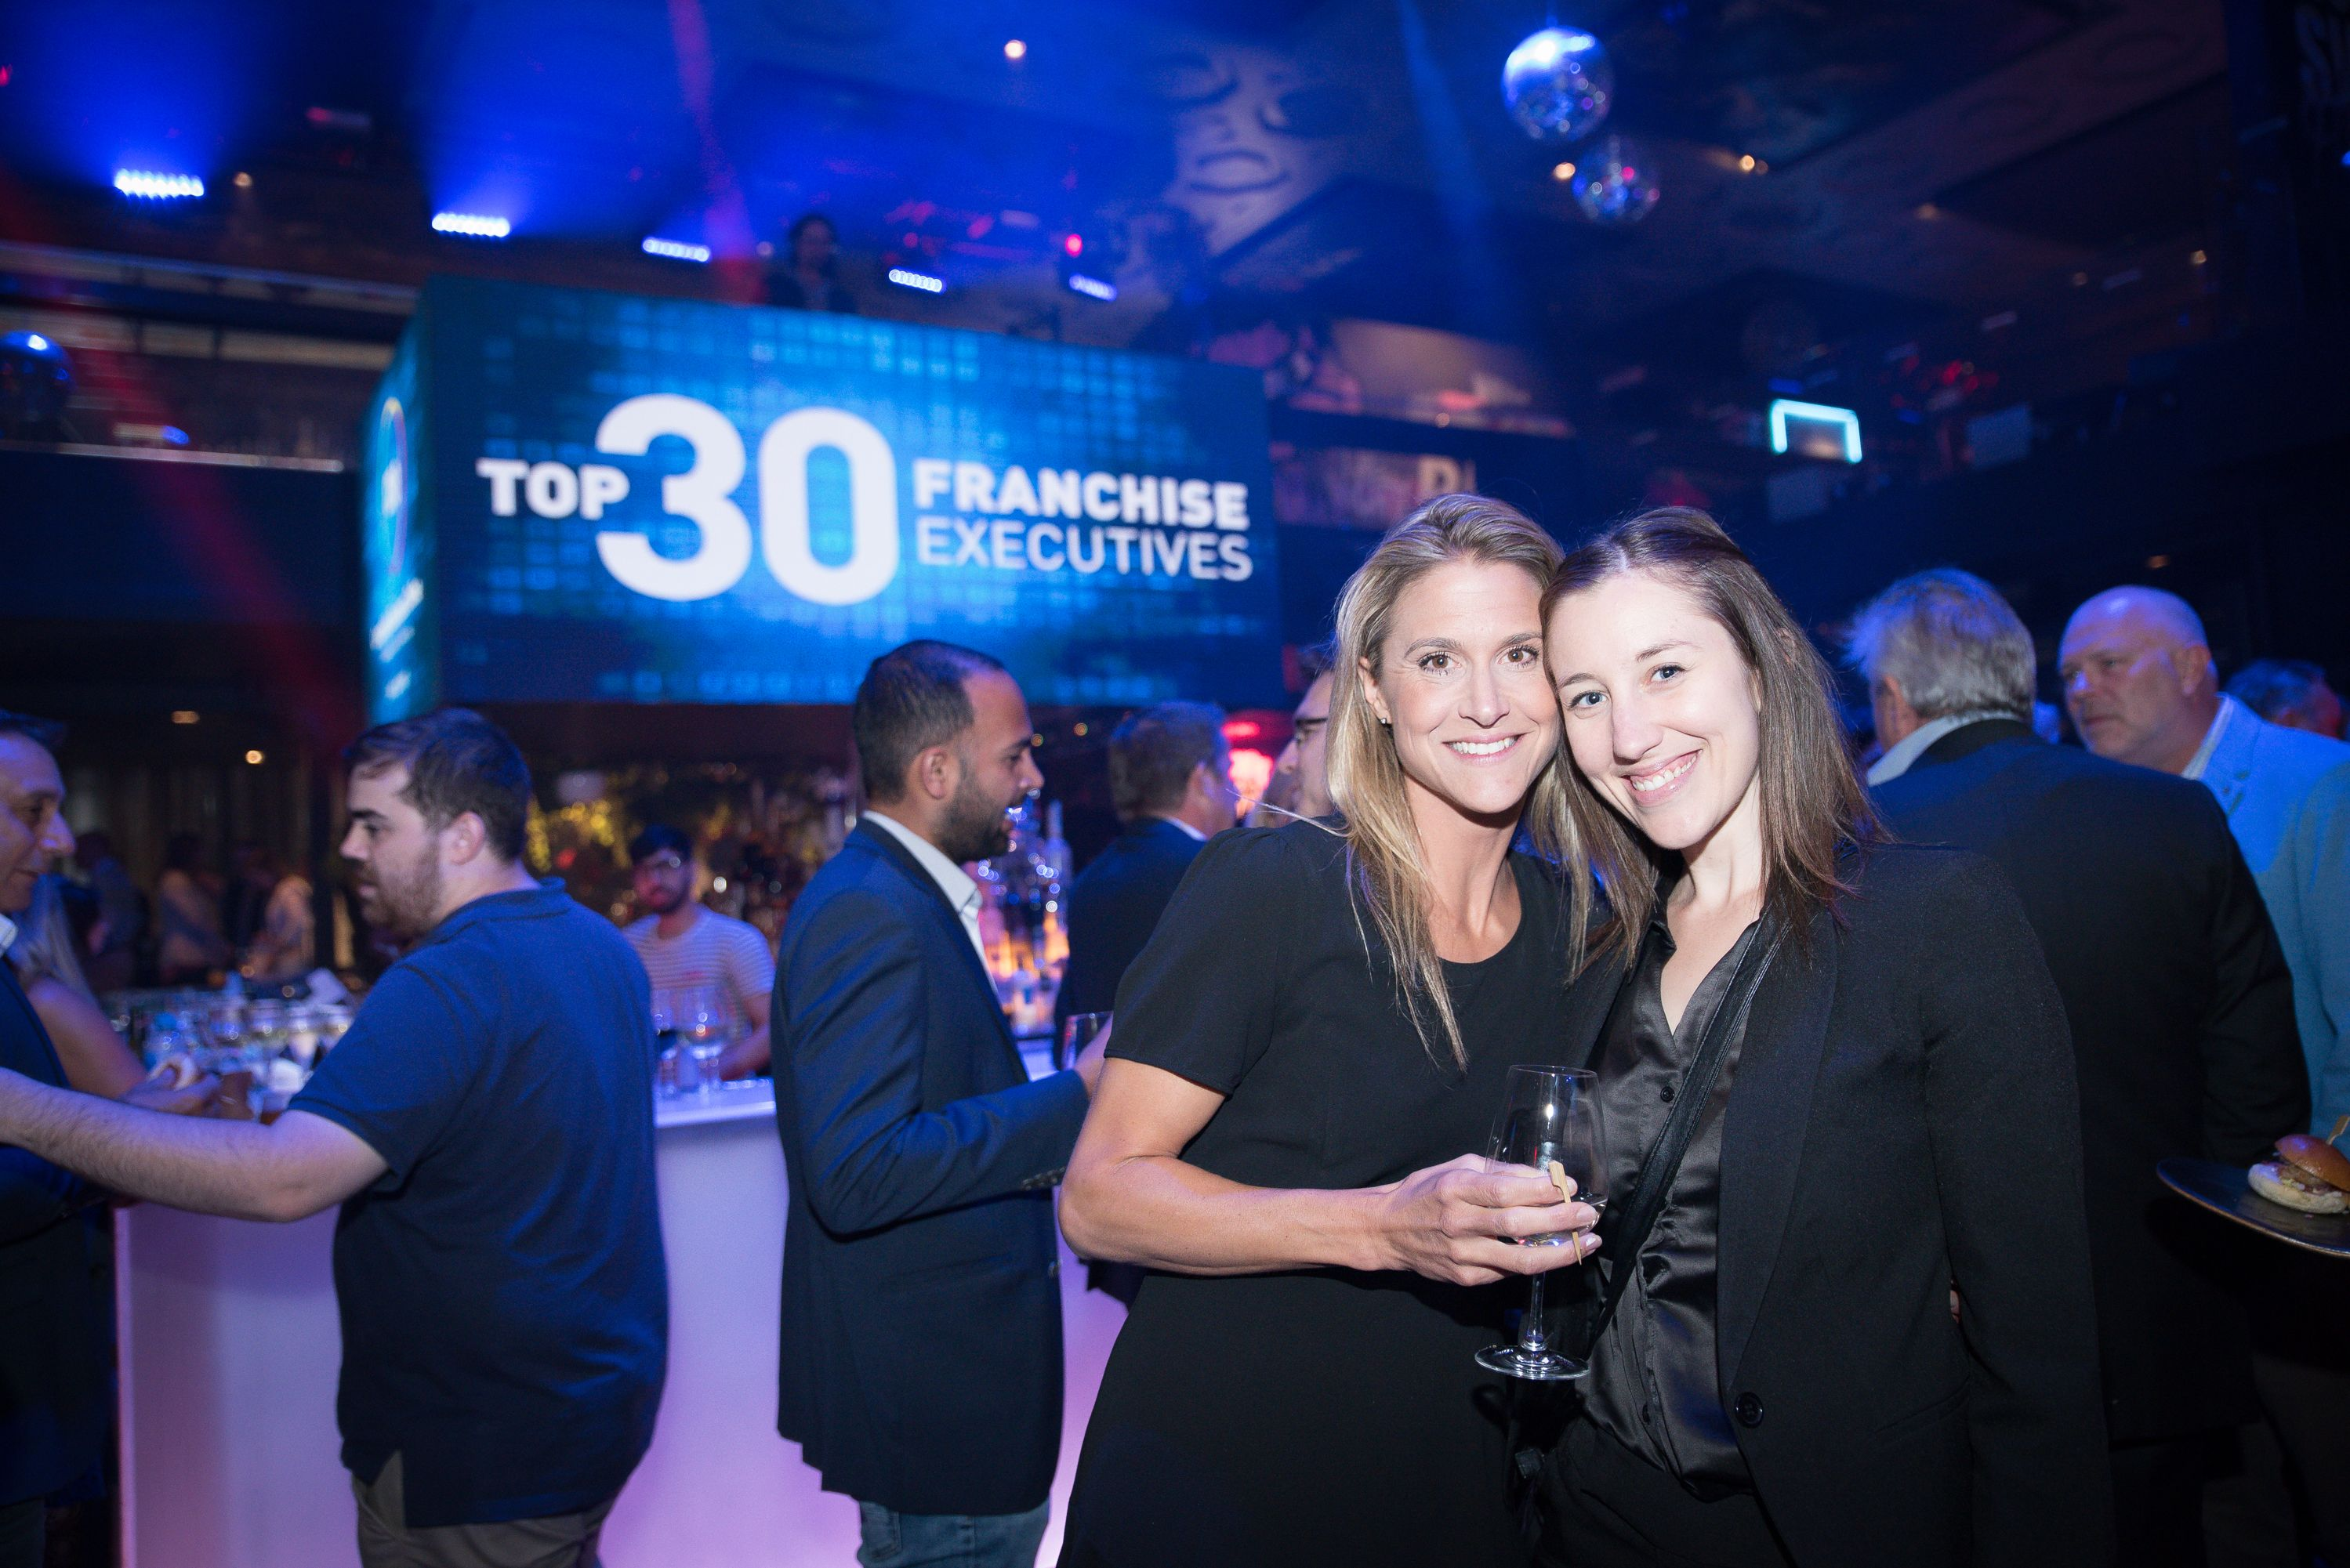 A look back at the Top 30 Franchise Executives launch party | Inside Franchise Business